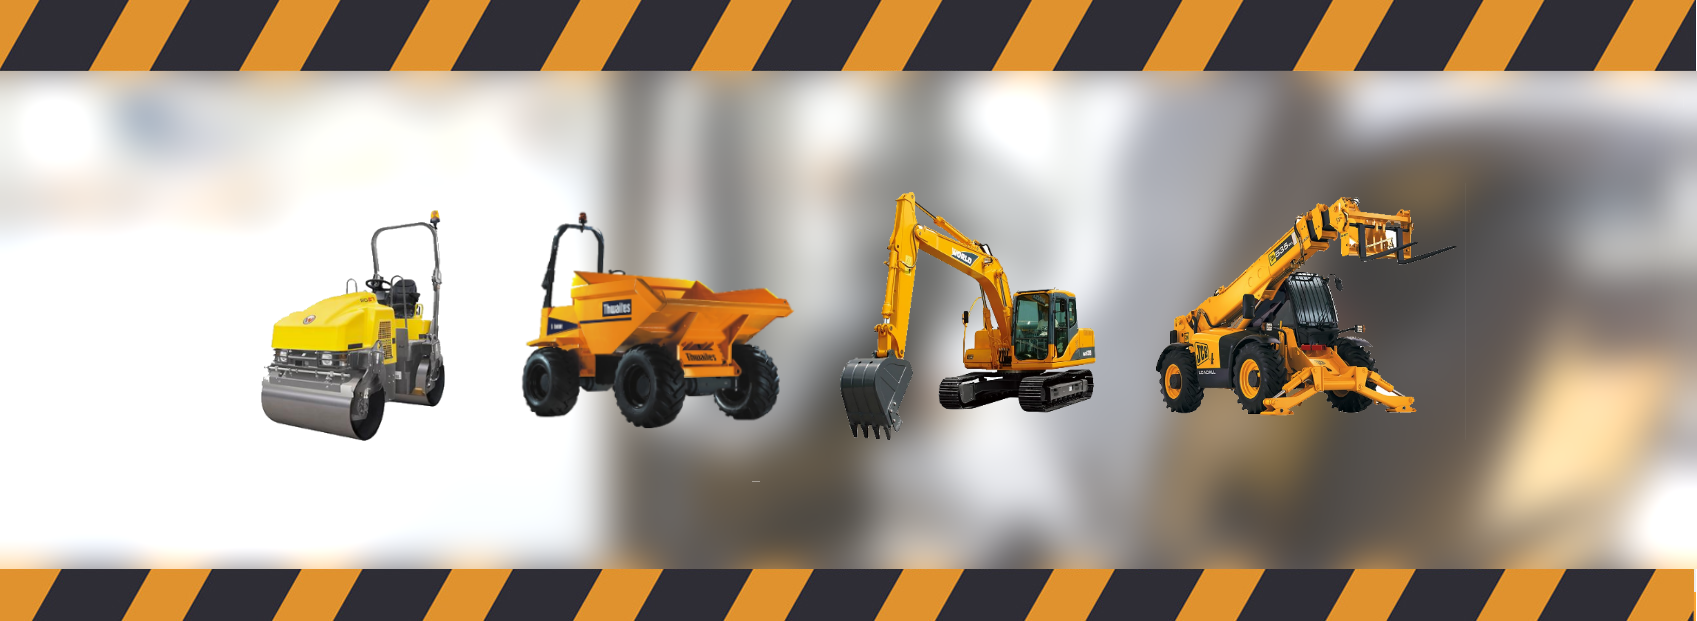 vehicles-banner1